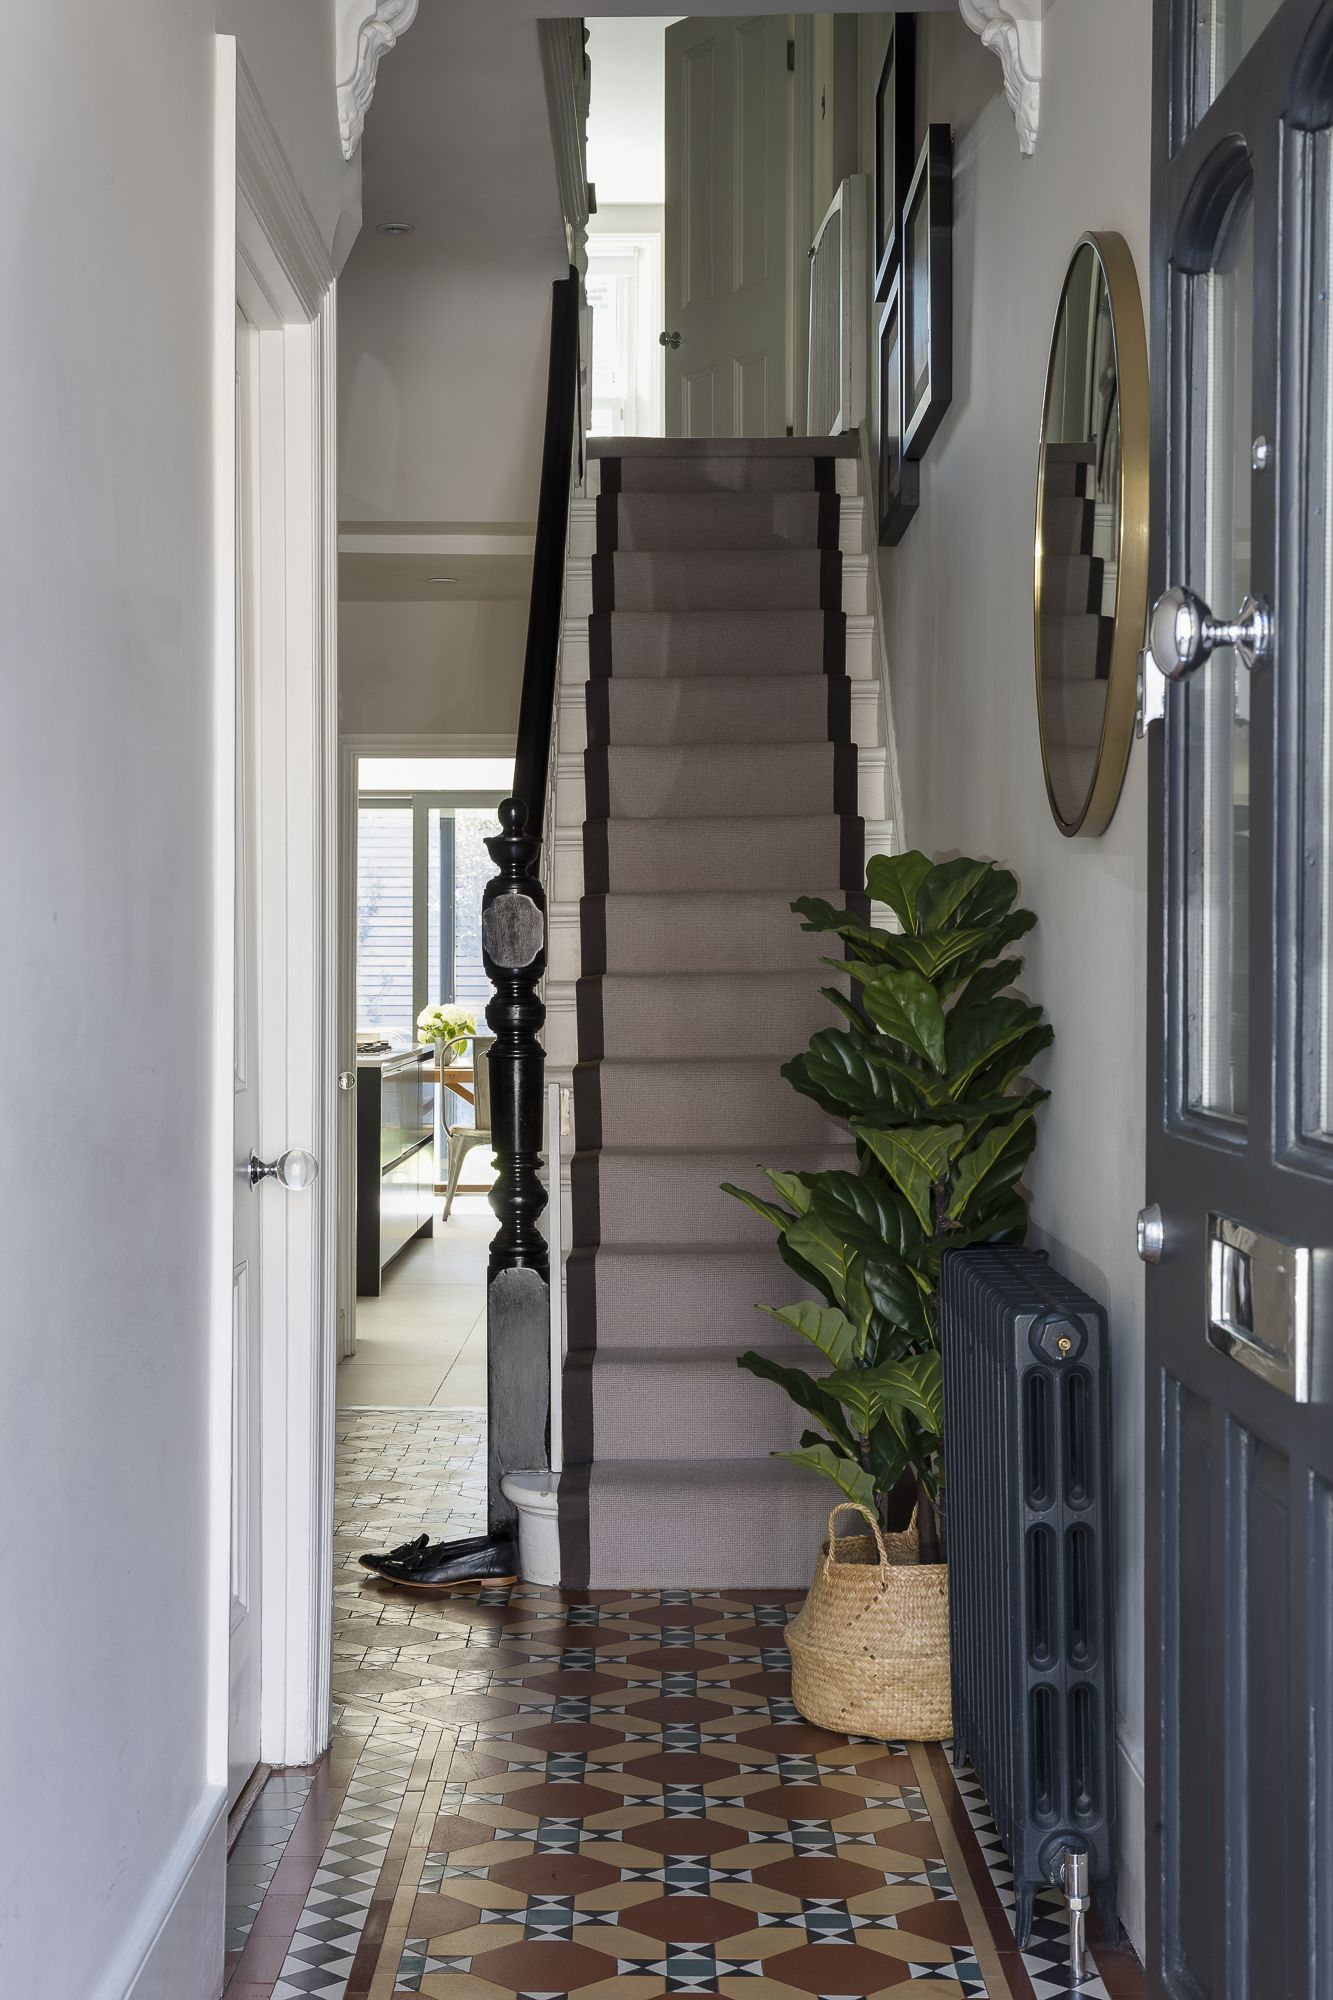 Interior Design By Imperfect Interiors At This Victorian Terraced House In Balham Victorian House Interiors Victorian Terrace Interior Victorian Terrace House